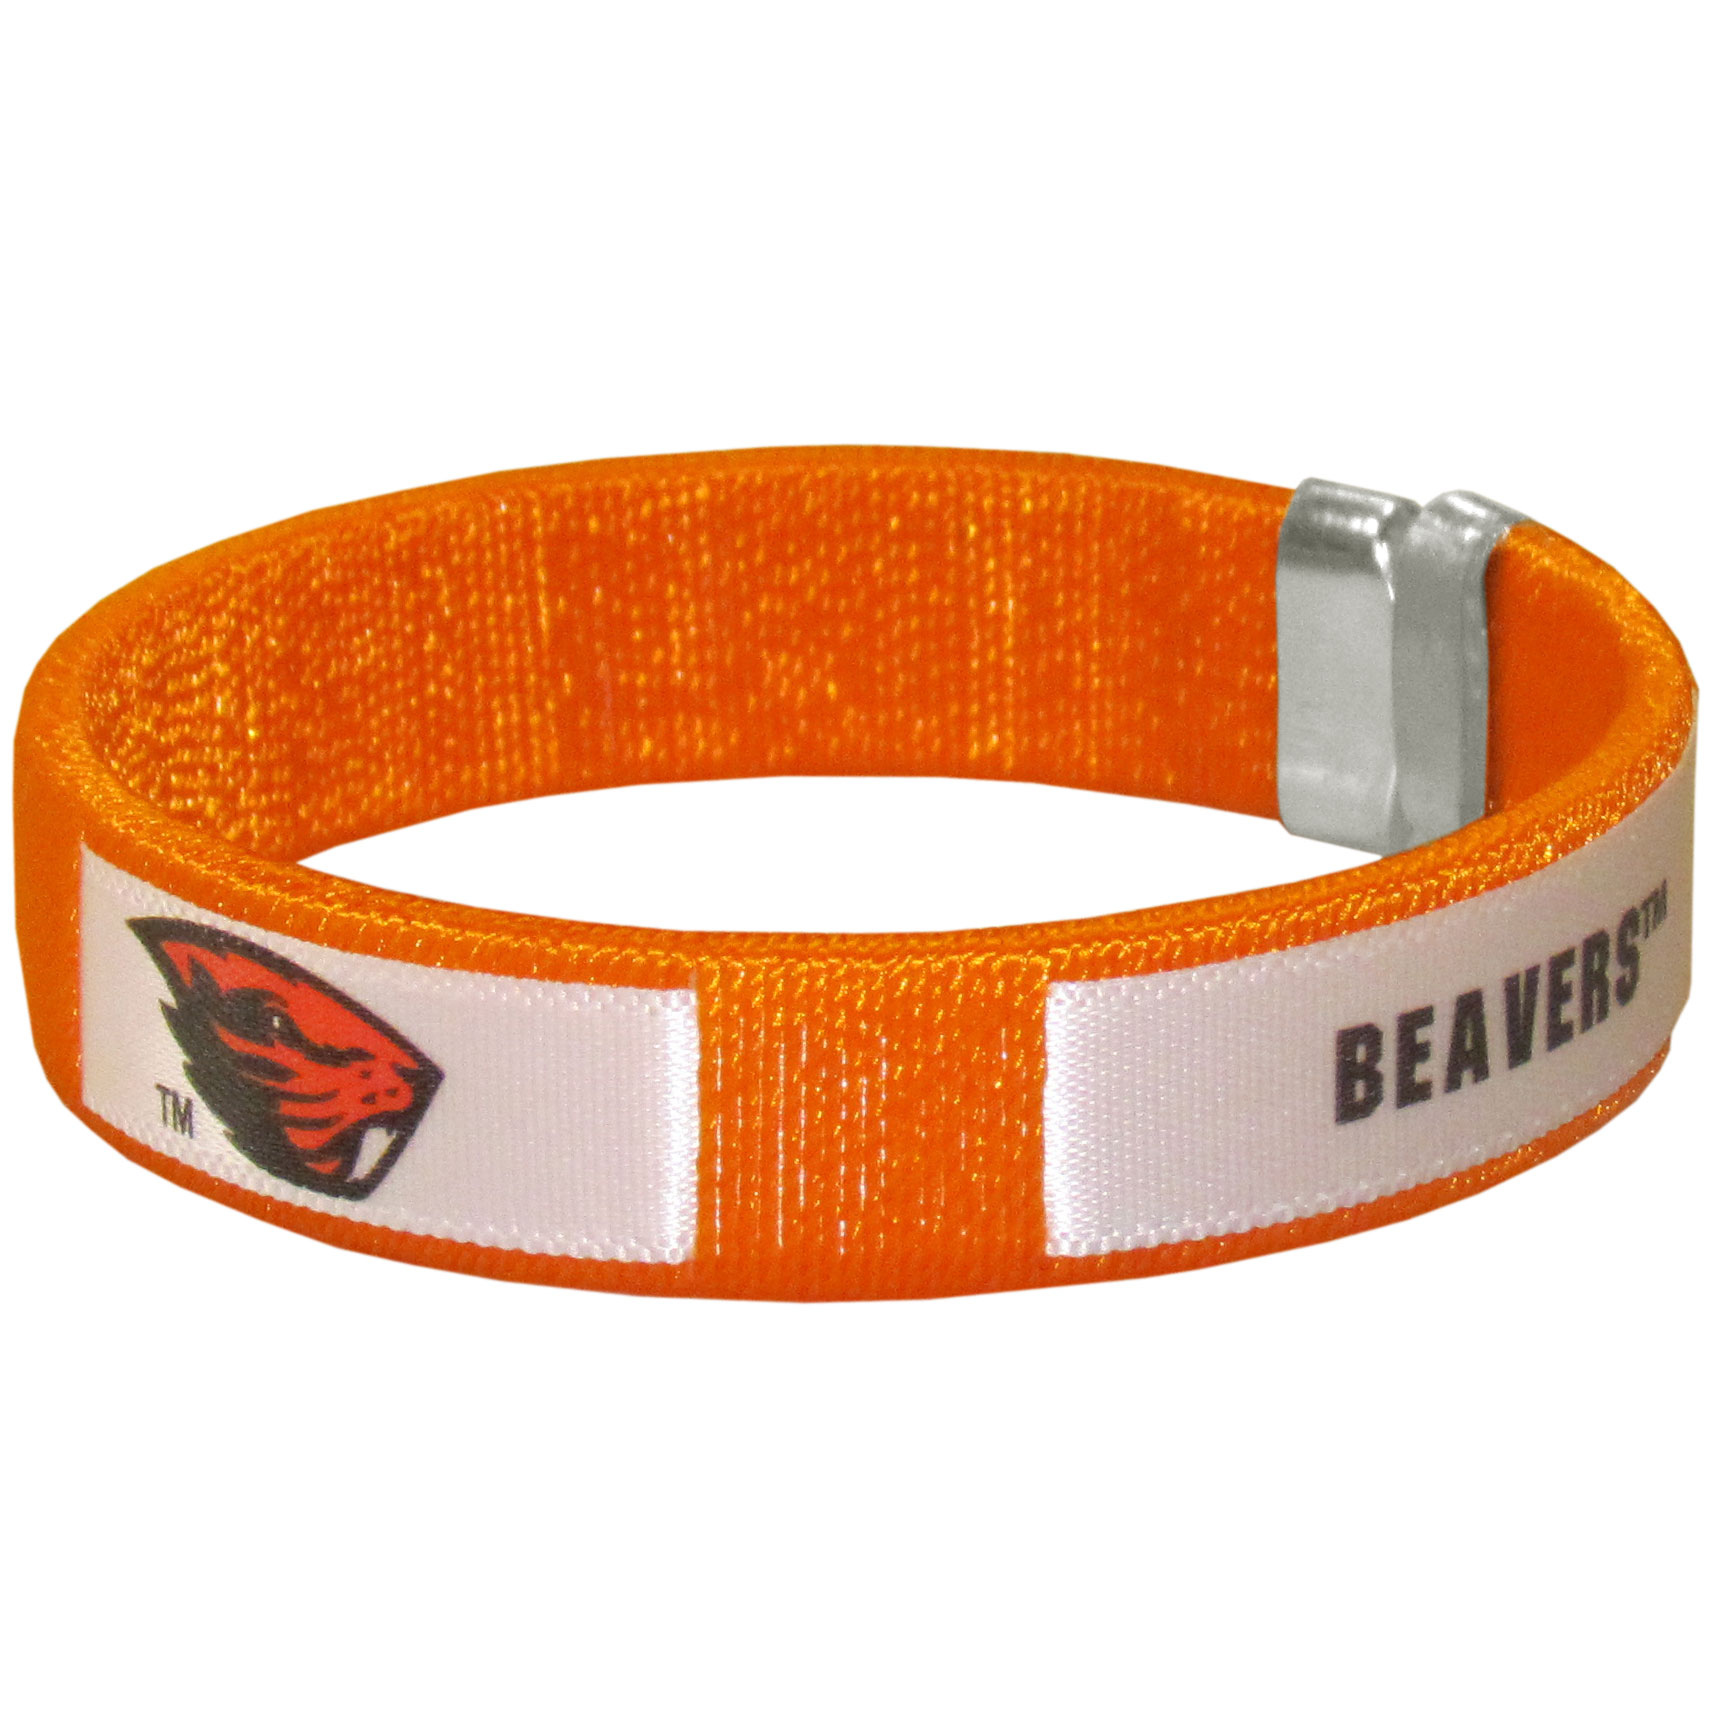 Oregon St. Beavers Fan Bracelet - Our Fan Bracelet is a one size fits all string cuff bracelets with a screen printed ribbon with the team Oregon St. Beavers name and logo.